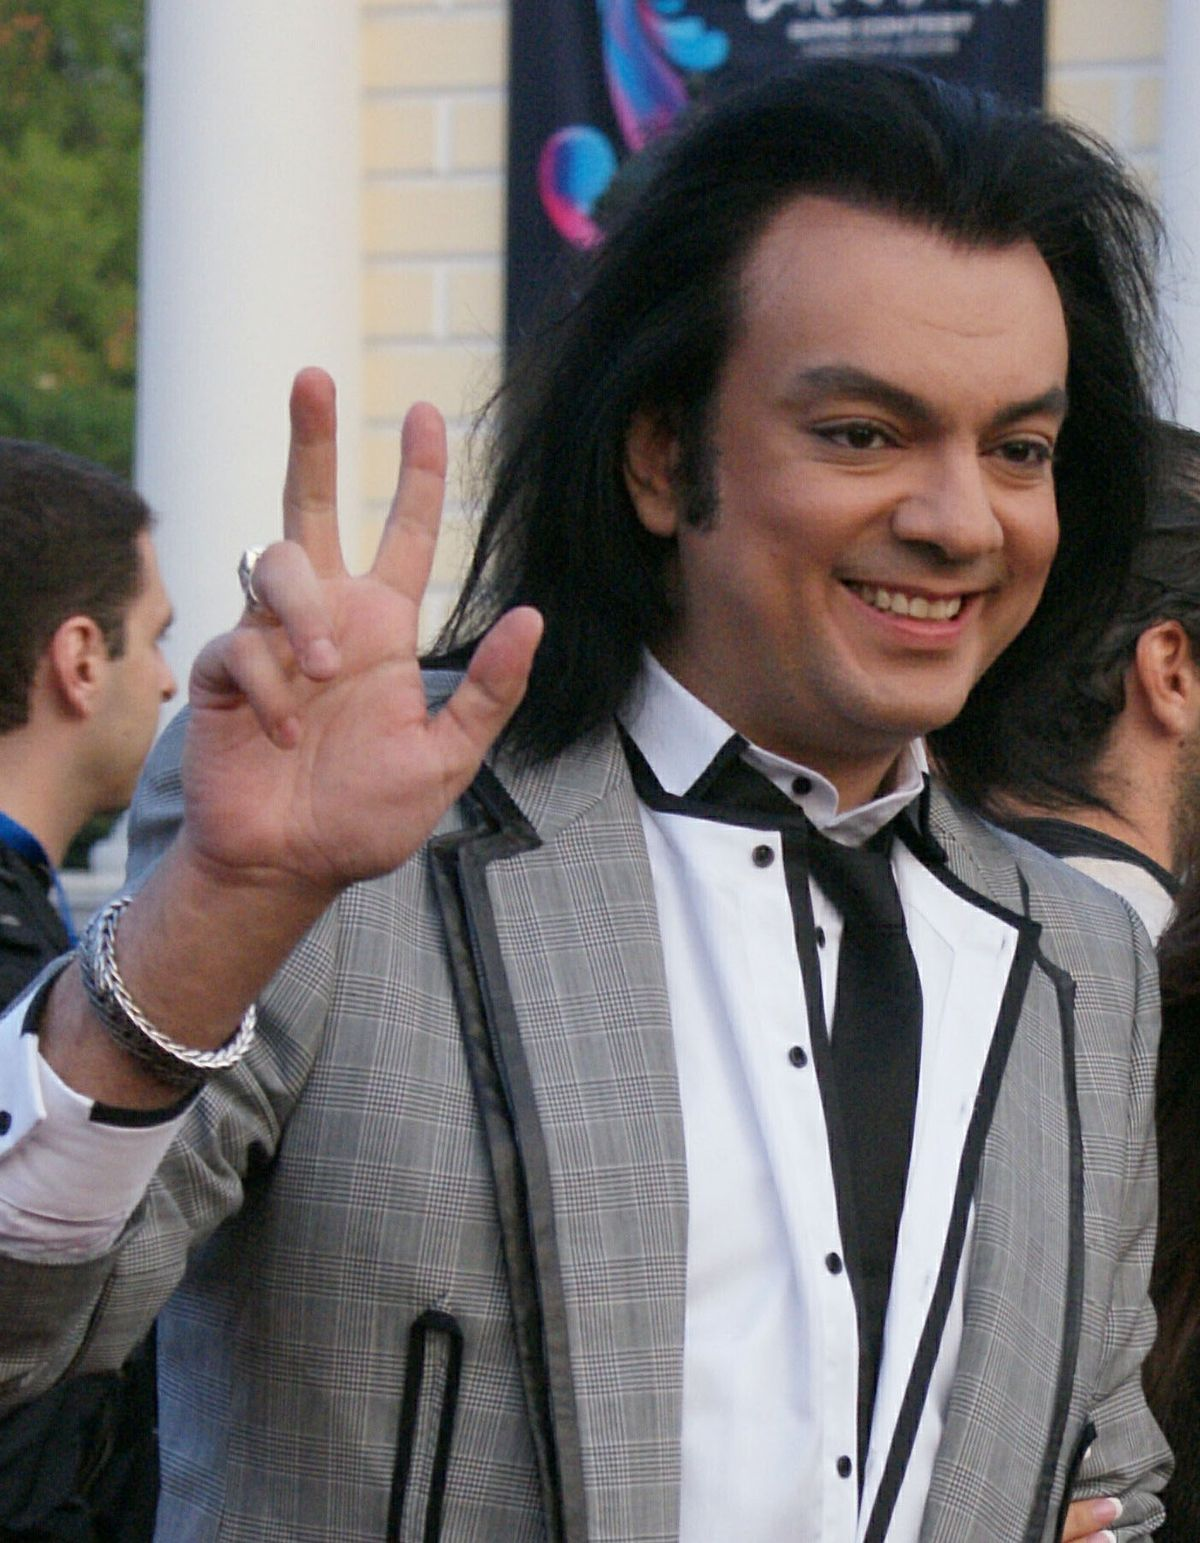 A fight between Kirkorov and Yablokova was invented by Konstantin Ernst April 13, 2011 87